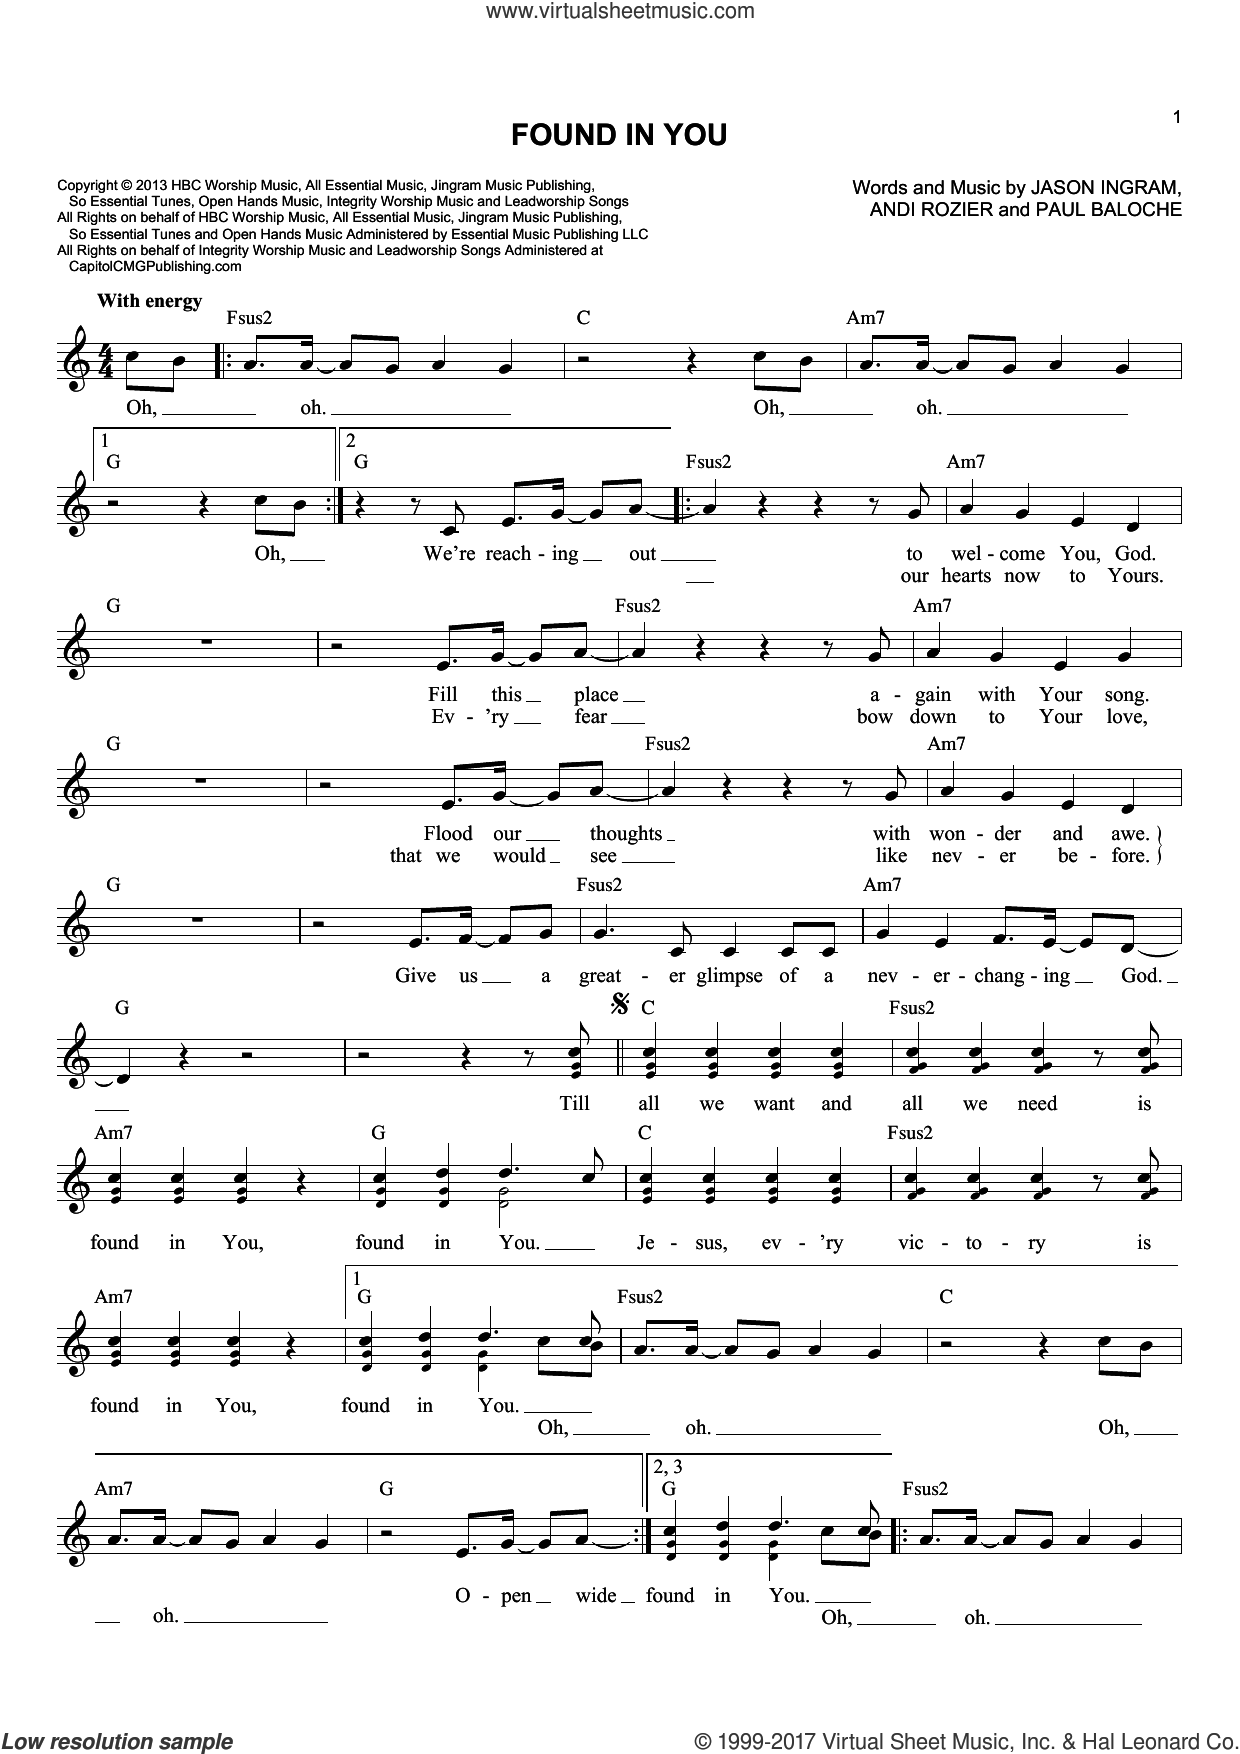 Found In You sheet music for voice and other instruments (fake book) by Paul Baloche, Andi Rozier and Jason Ingram, intermediate skill level